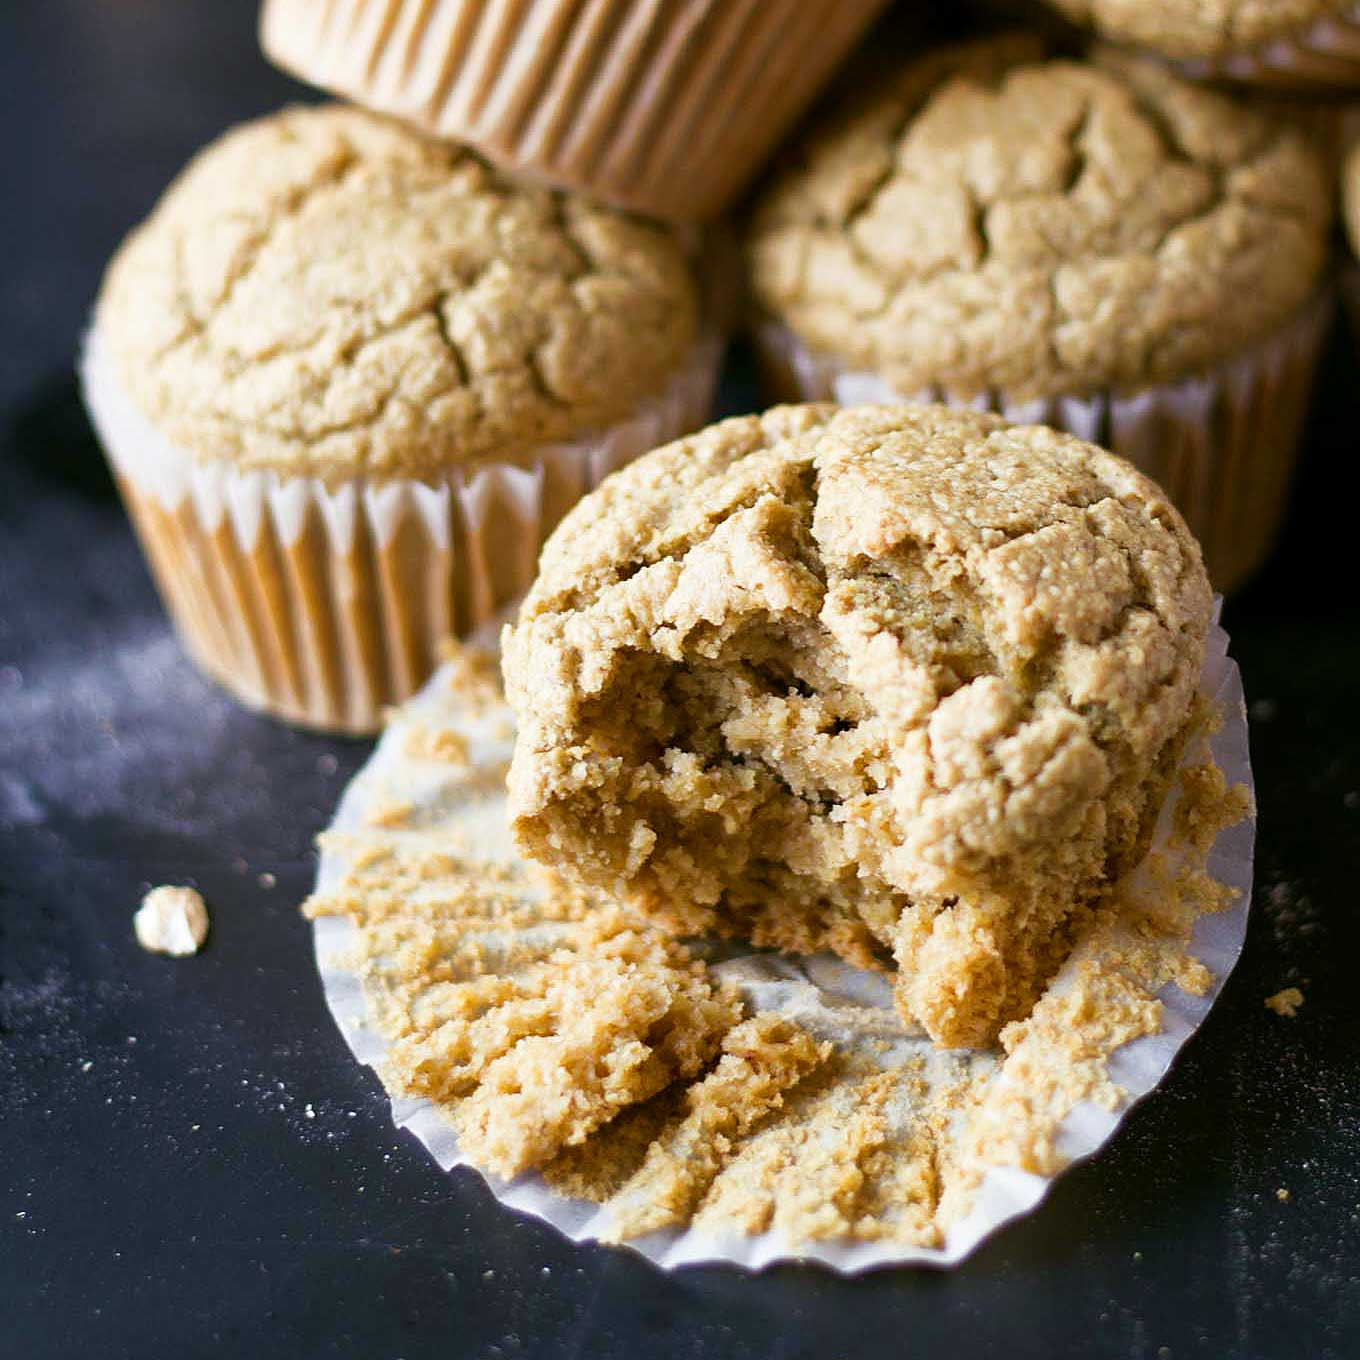 These vegan blender muffins are healthy and so easy to make! Vegan, oil-free, gluten-free, and super soft!   https://eatwithinyourmeans.com